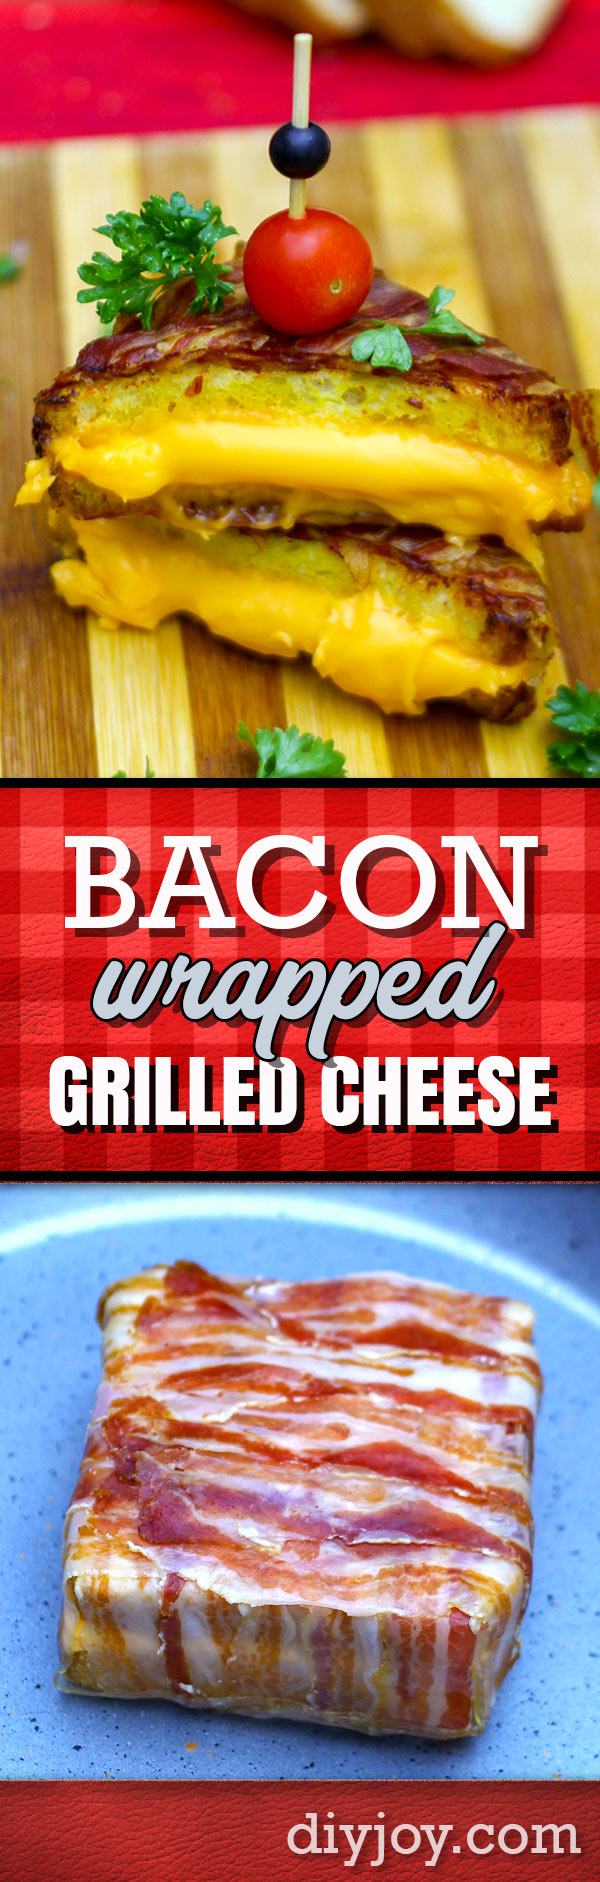 How To Make A Bacon Wrapped Grilled Cheese Sandwich - Step by Step Recipe Tutorial and Video - Easy Snack and Lunch Ideas